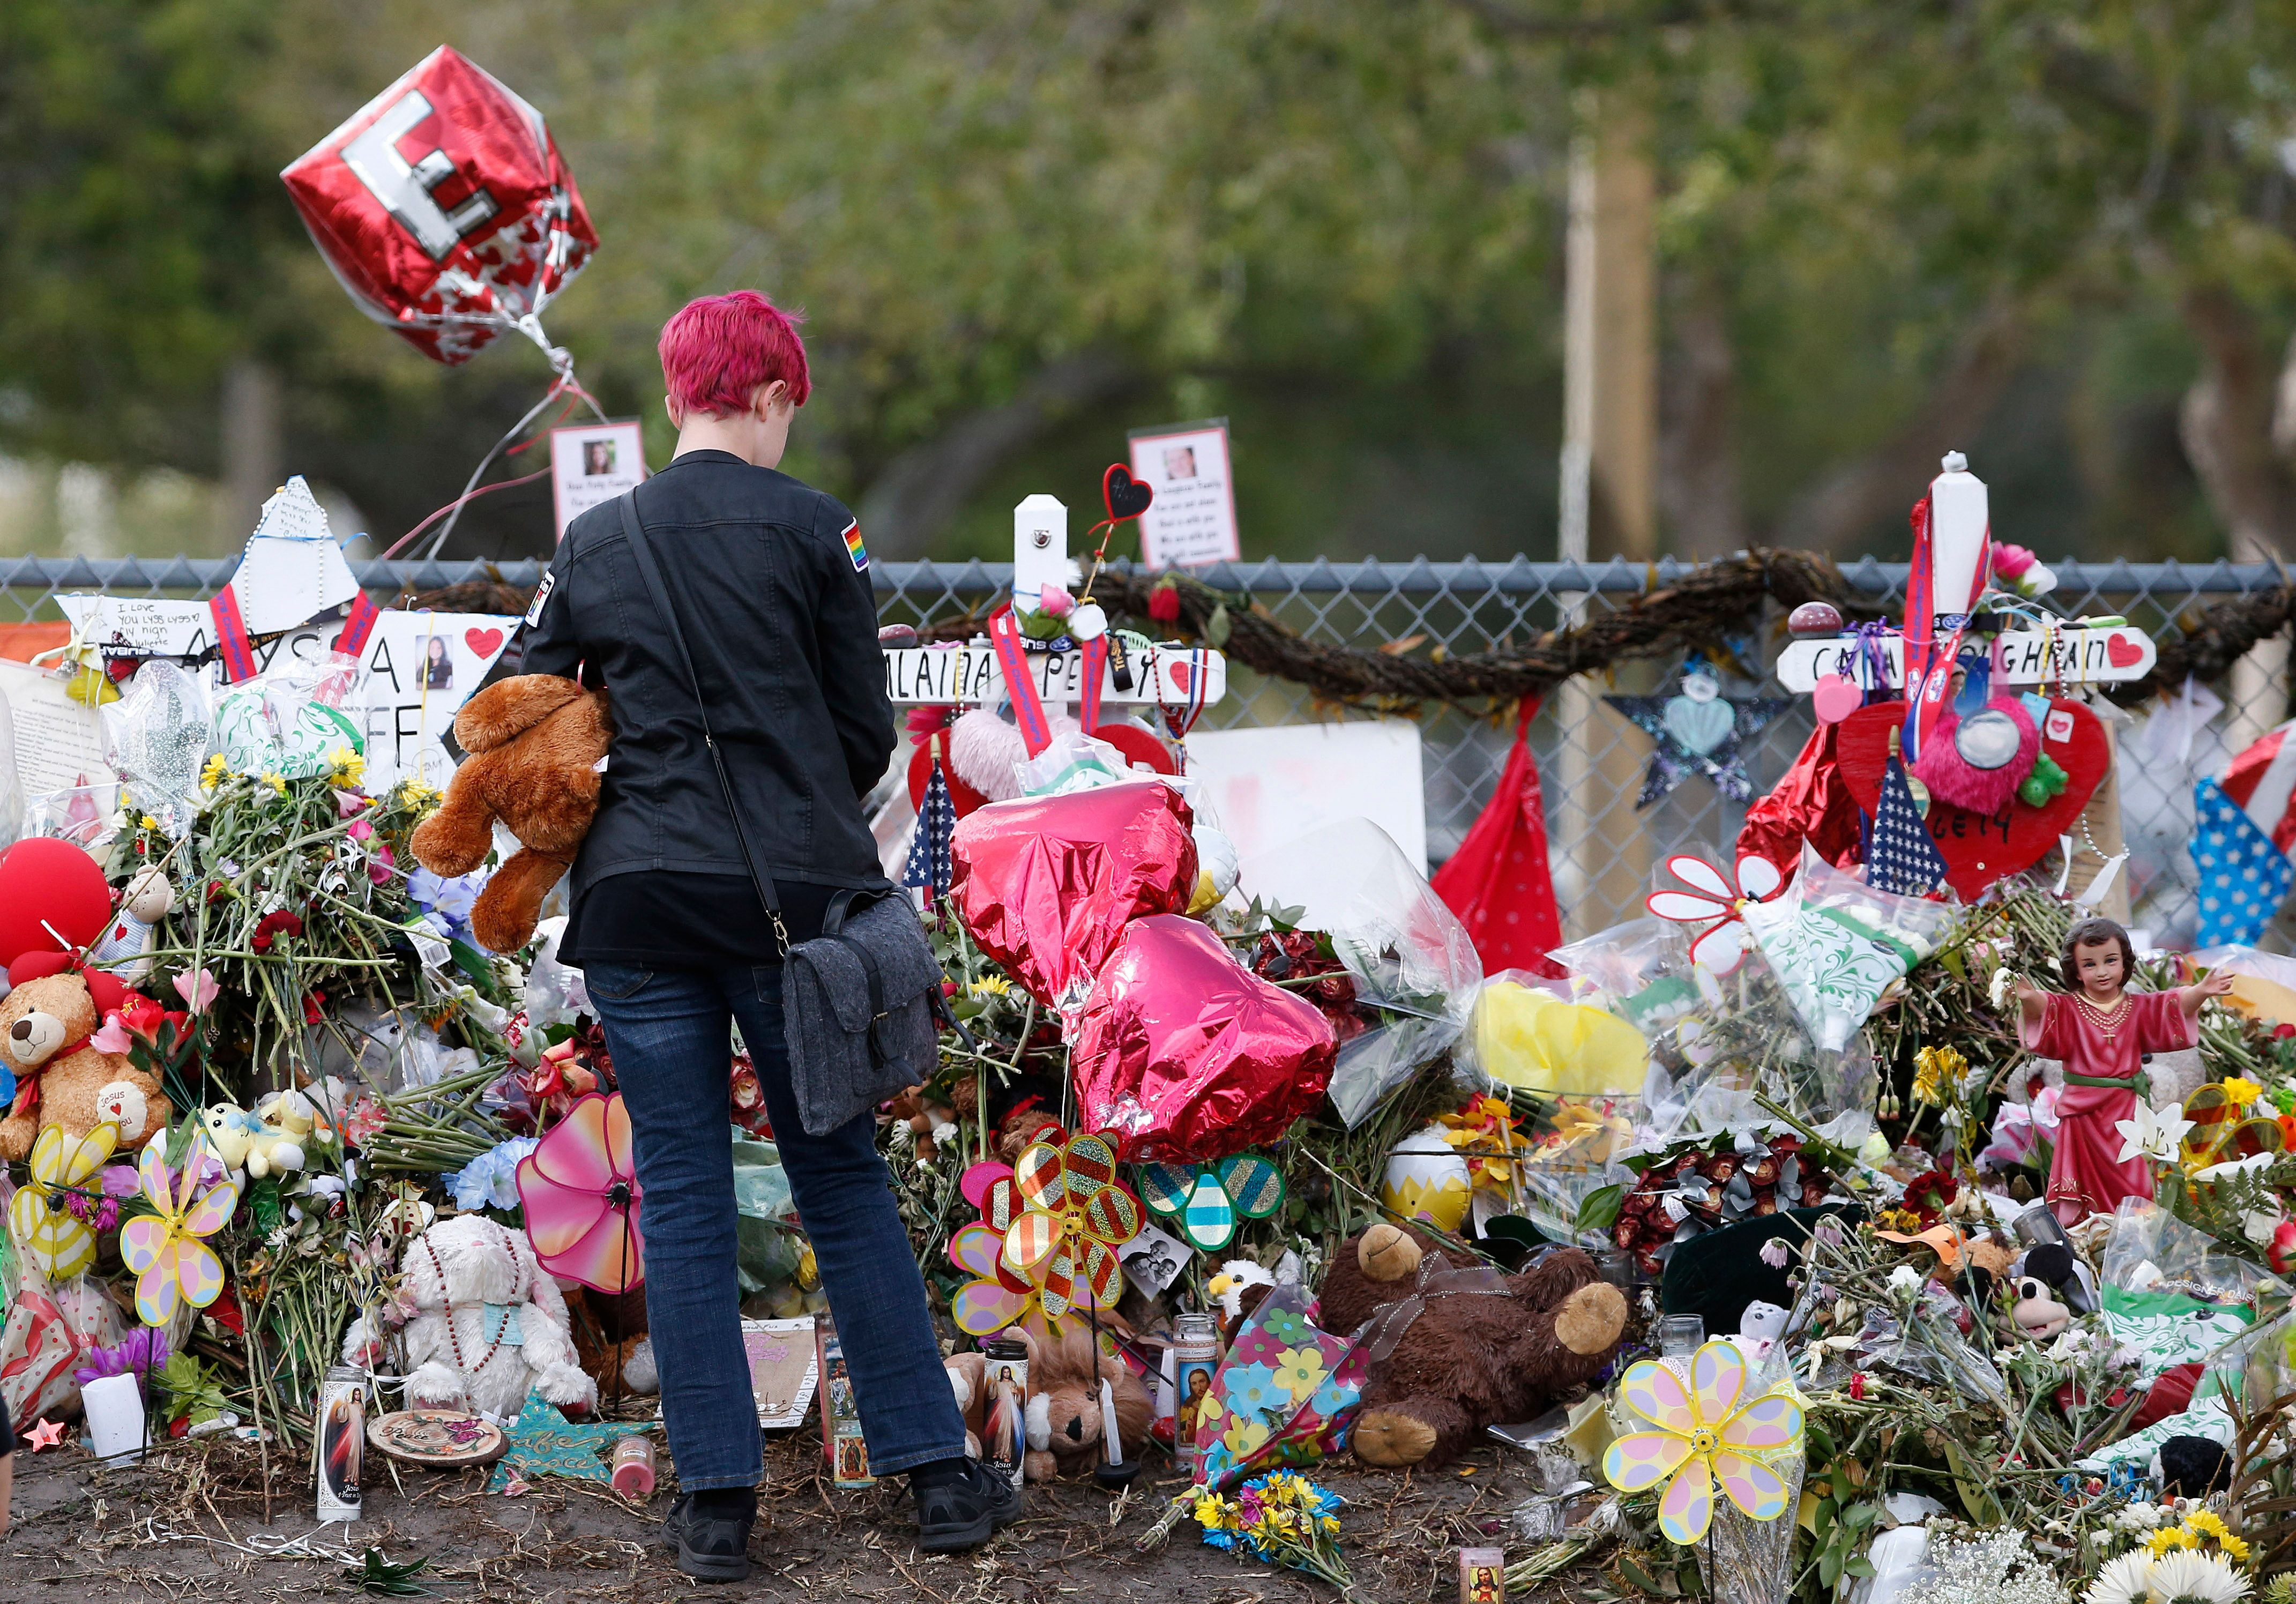 A Marjory Stoneman Douglas High School student at a memorial following students' return to school in Parkland, Florida on February 28, 2018.